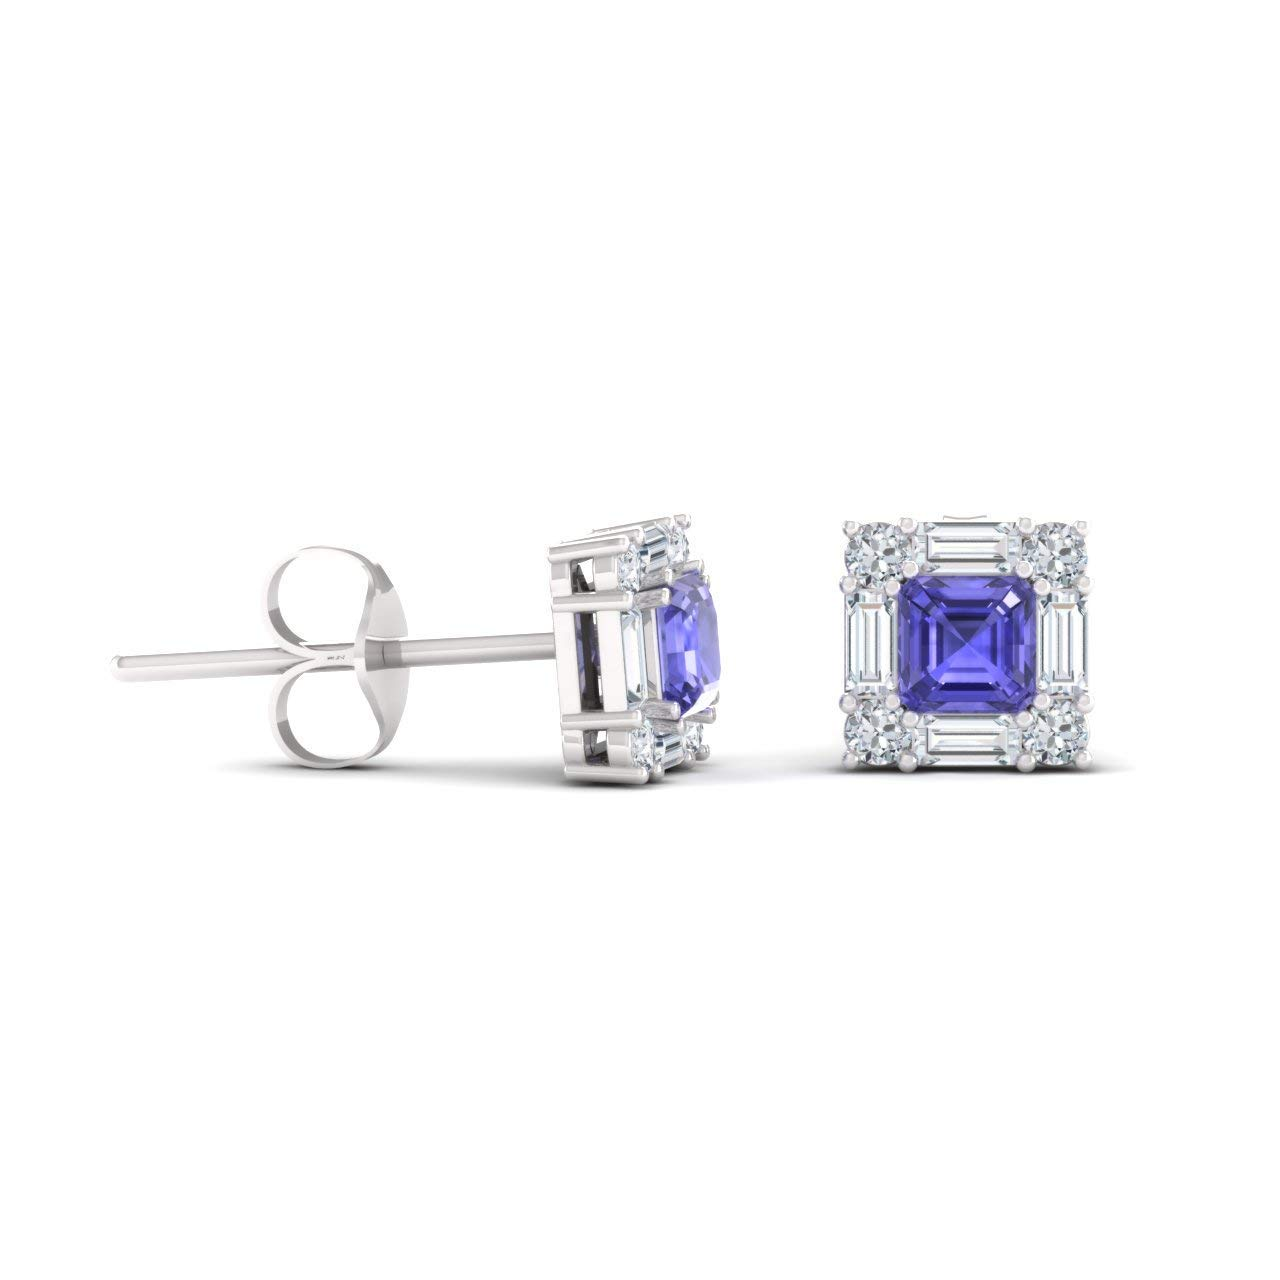 Diamondere Natural and Certified Princess Cut Gemstone and Diamond Halo Petite Earrings in 14K White Gold | 0.92 Carat Stud Earrings for Women